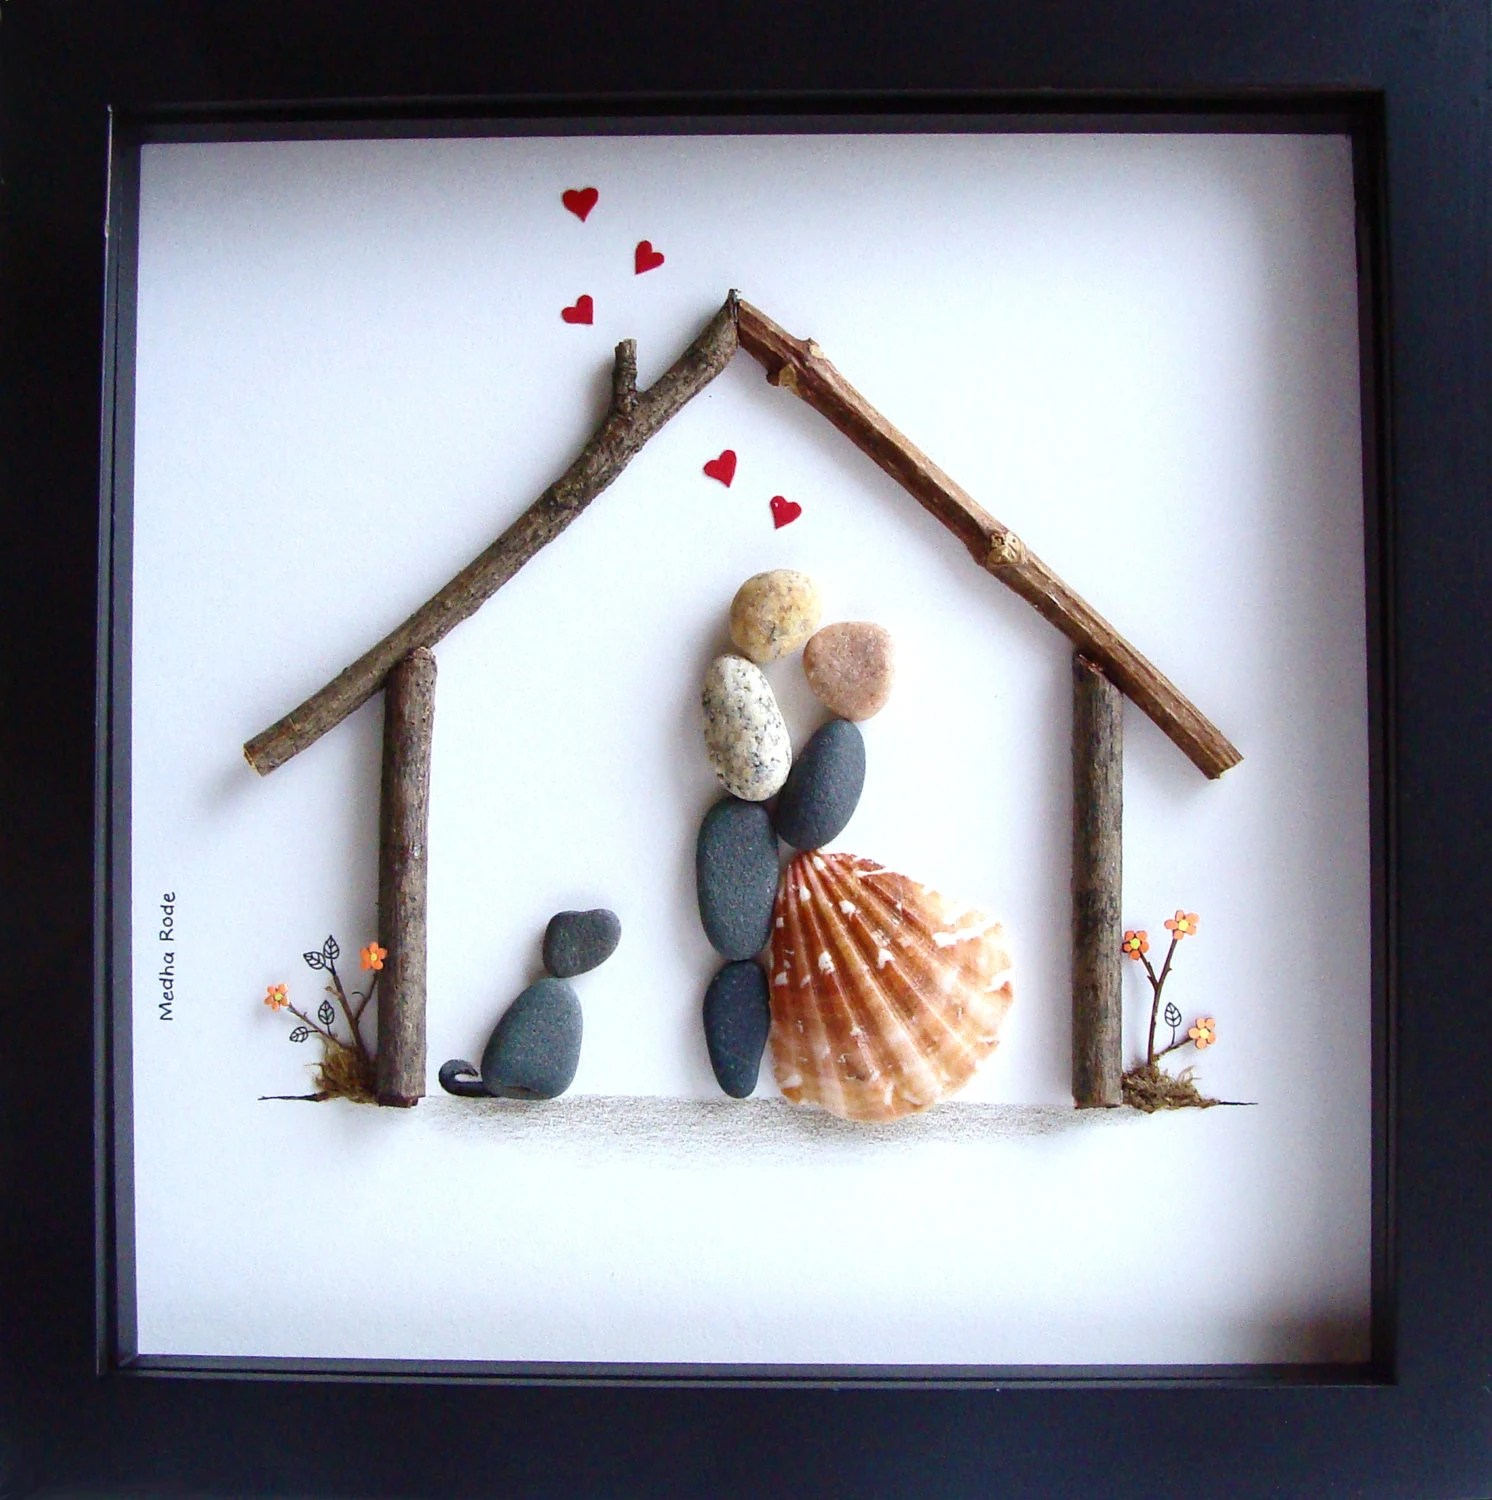 Unique WEDDING GiftCustomized Wedding GiftPebble ArtUnique